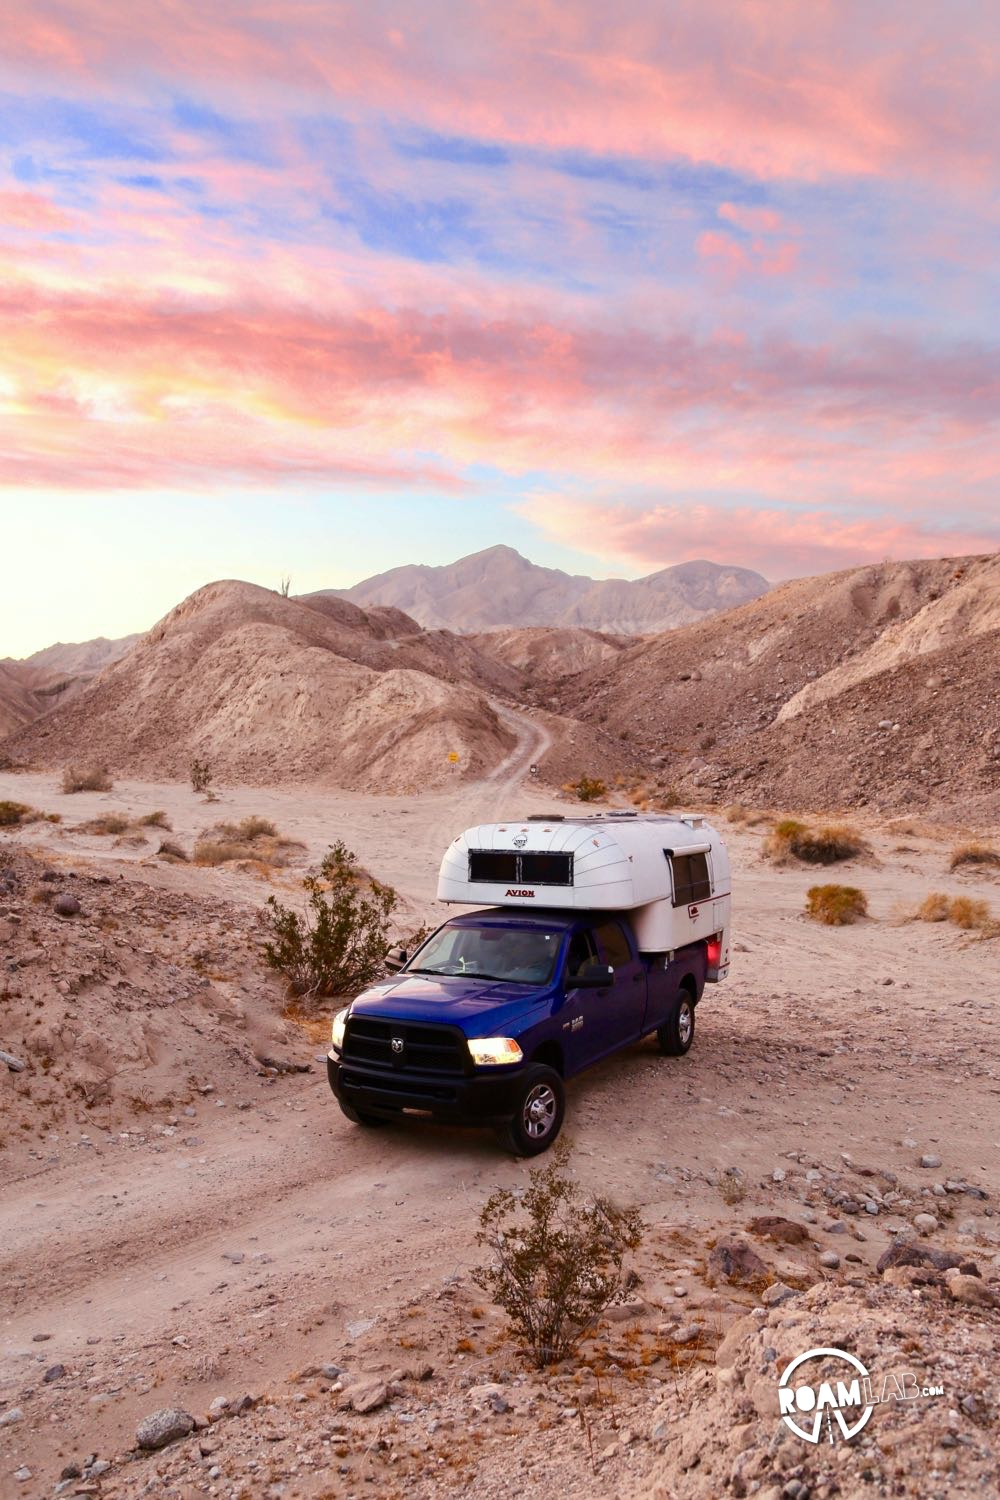 A triumphant departure from the Palm Slot Canyon in Anza-Borrego Desert State Park with our Avion Ultra C11 truck camper